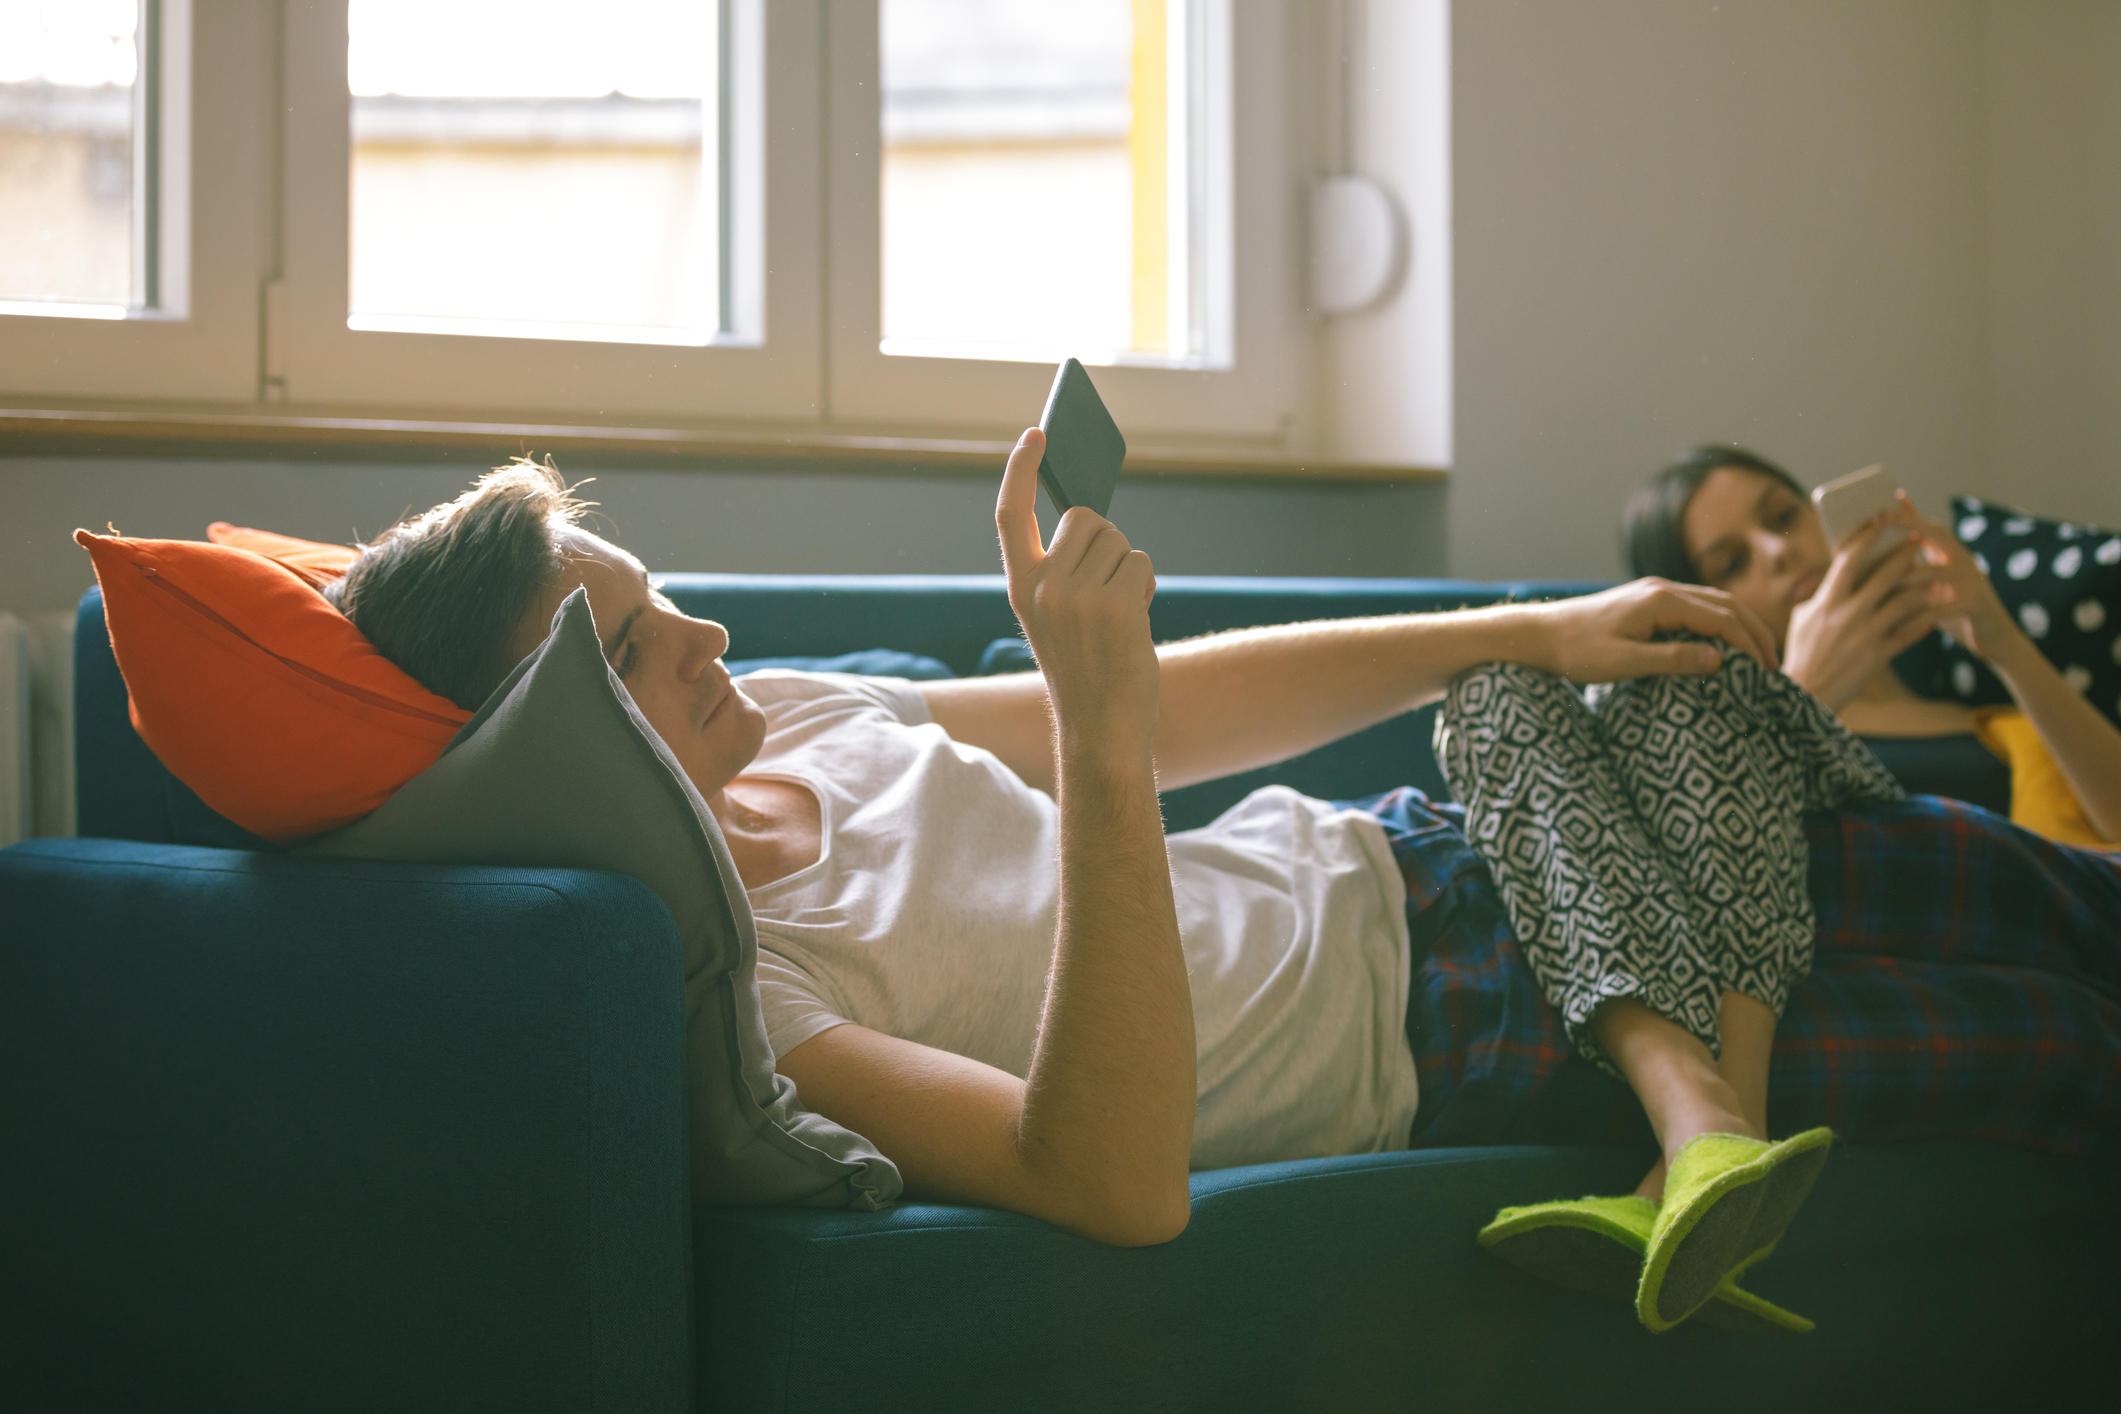 Young couple in pajamas lying on the sofa with legs intertwined and using phones